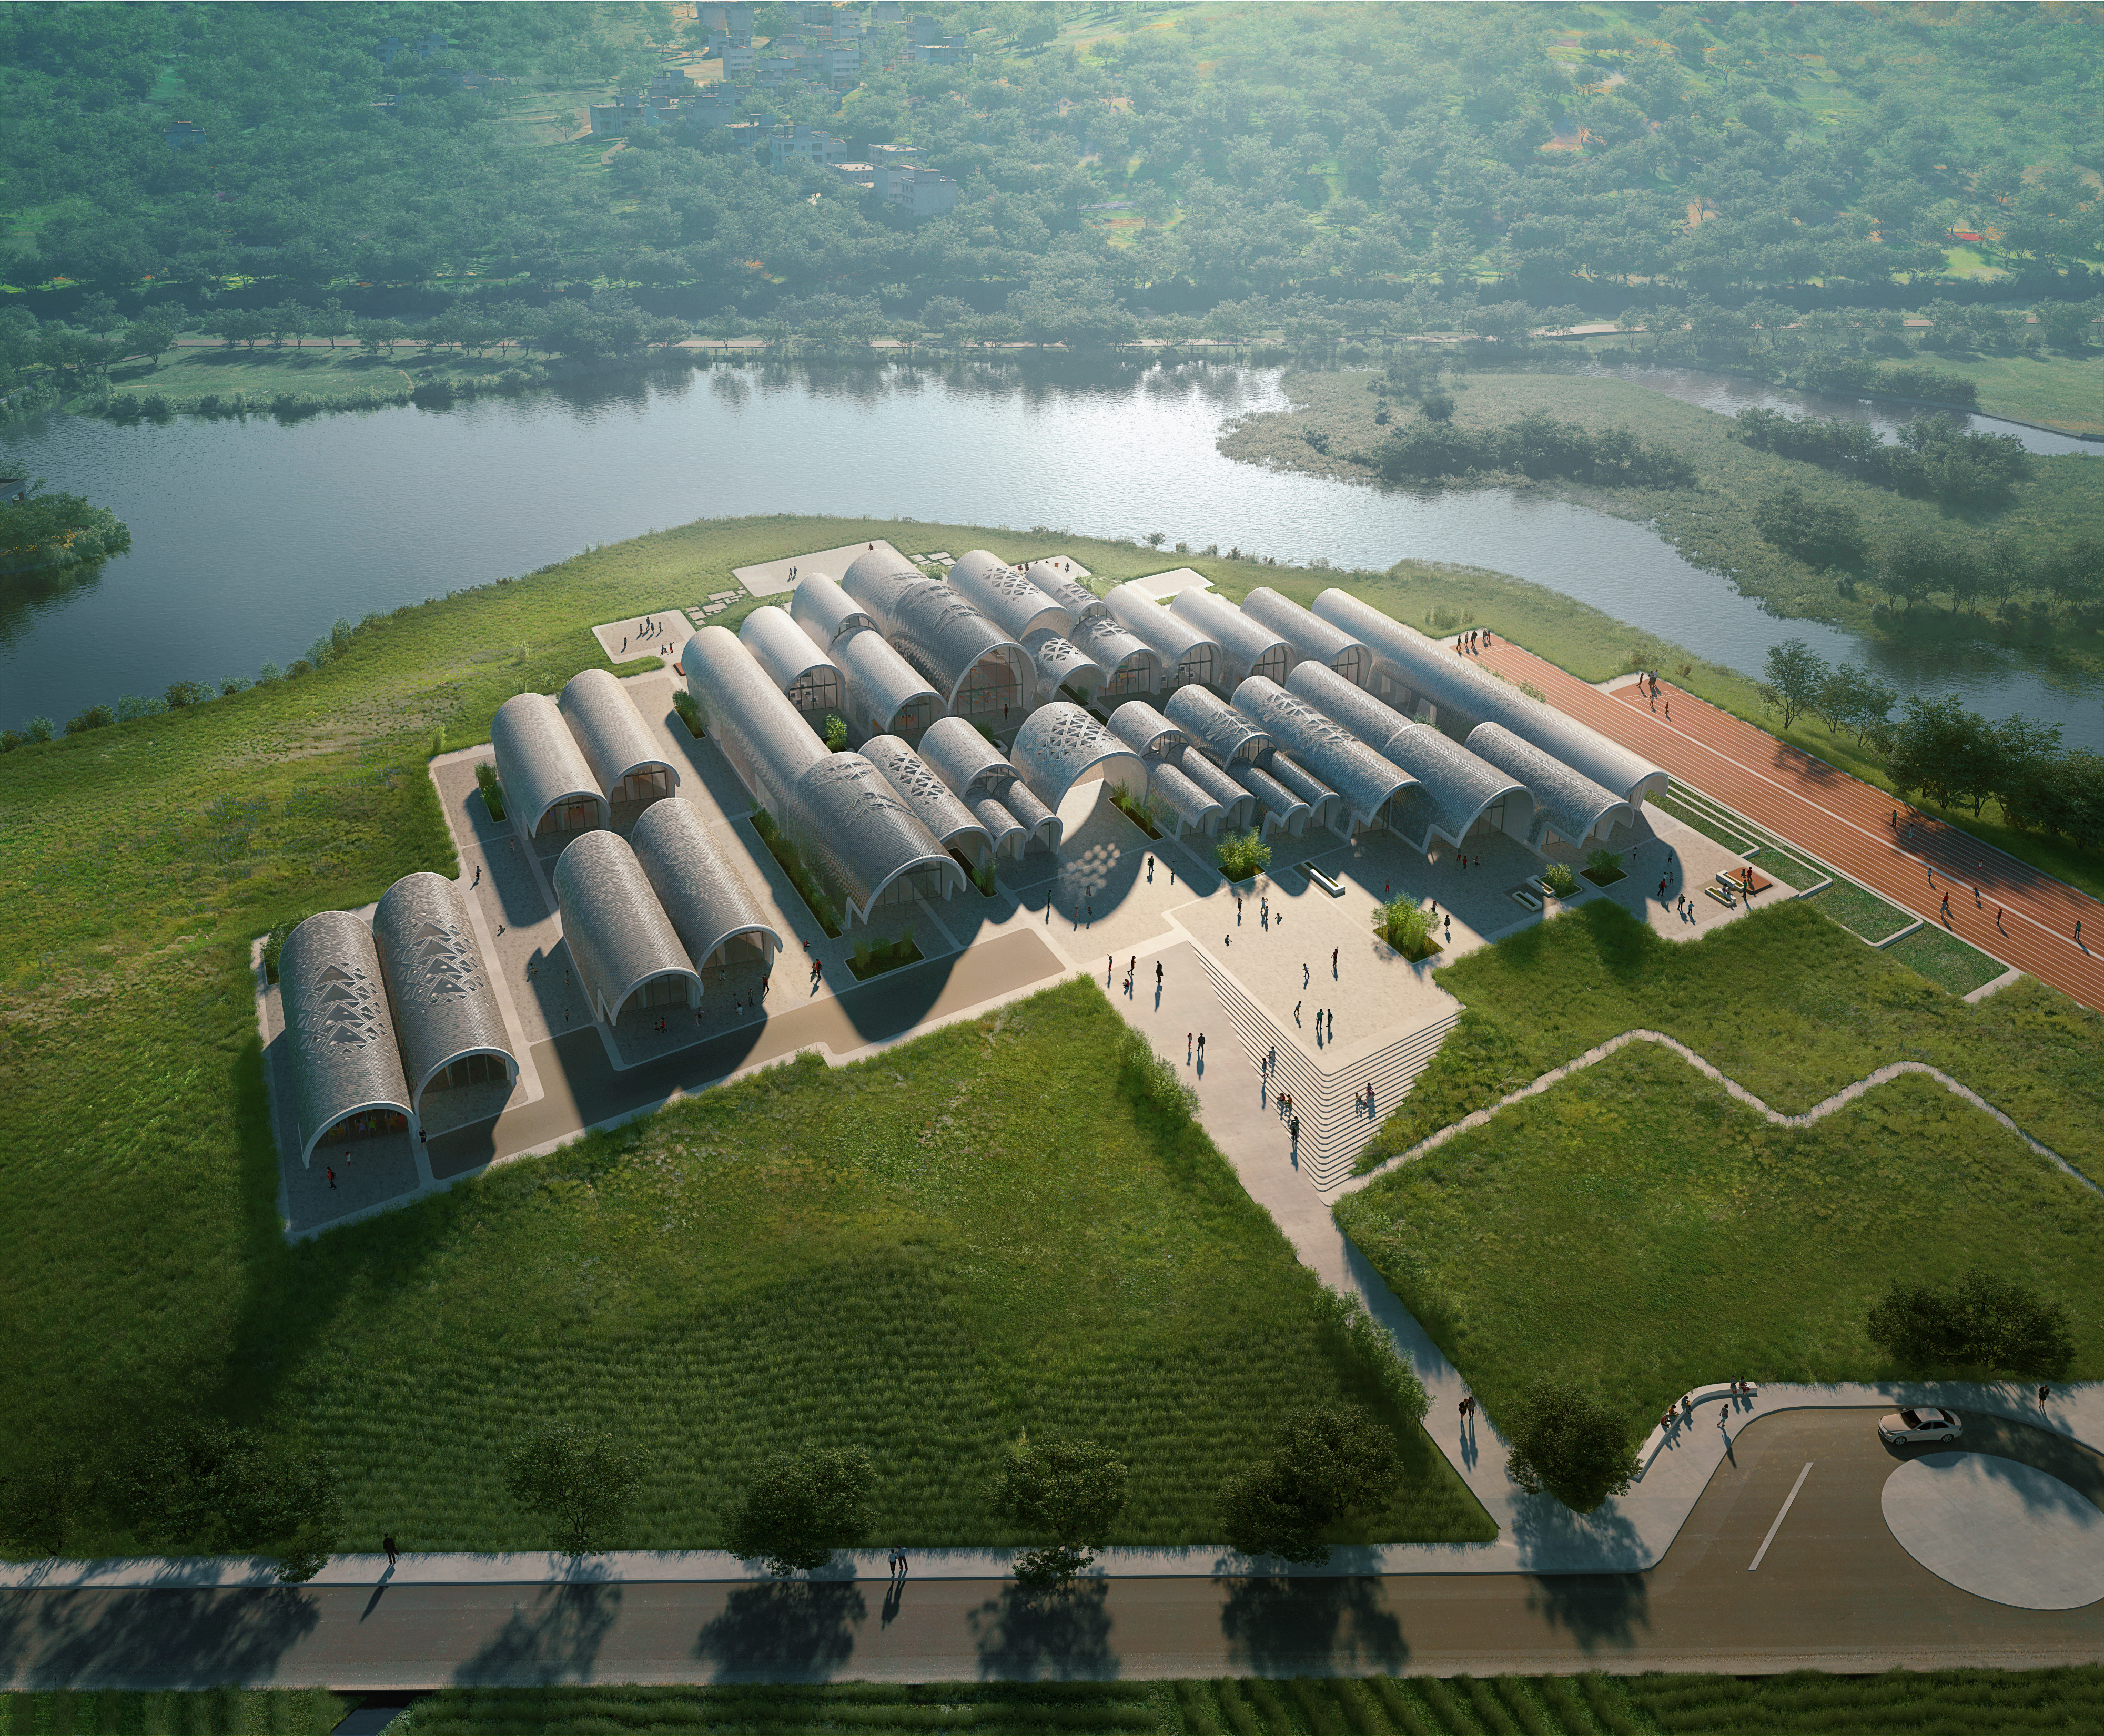 Aerial rendering of school comprising a series of long, vaulted buildings set on a grassy site by a river.